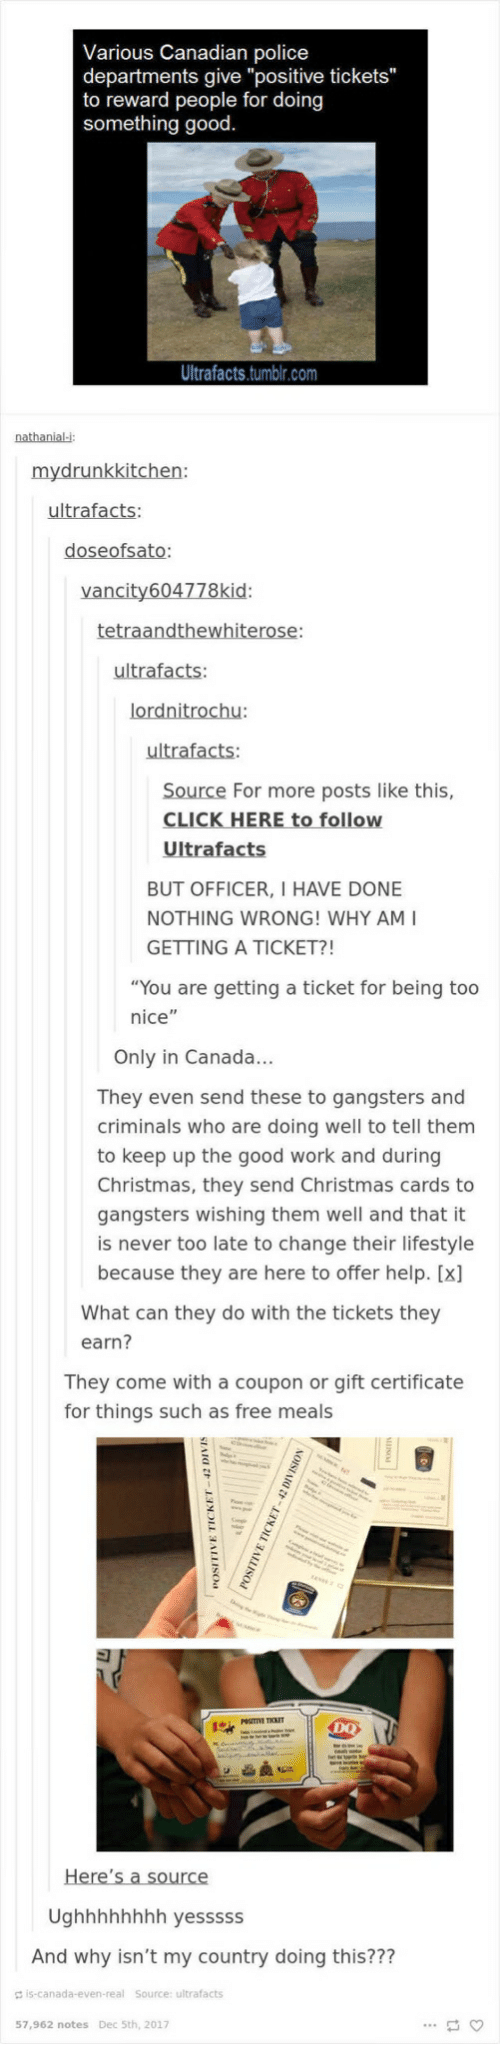 "Christmas, Police, and Tumblr: Various Canadian police  departments give ""positive tickets""  to reward people for doing  something good  Ultrafacts.tumblr.com  nathanial-i  ultrafacts  Source For more posts like this,  BUT OFFICER, I HAVE DONE  NOTHING WRONG! WHY AMI  GETTING A TICKET?!  ""You are getting a ticket for being too  nice""  ..  Only in Canada  They even send these to gangsters and  criminals who are doing well to tell them  to keep up the good work and during  Christmas, they send Christmas cards to  gangsters wishing them well and that it  is never too late to change their lifestyle  because they are here to offer help. [x]  What can they do with the tickets they  earn?  They come with a coupon or gift certificate  for things such as free meals  DQ  Ughhhhhhhh yesssss  And why isn't my country doing this???  is-canada-even-real Source: ultrafacts  57,962 notes Dec 5th, 2017"